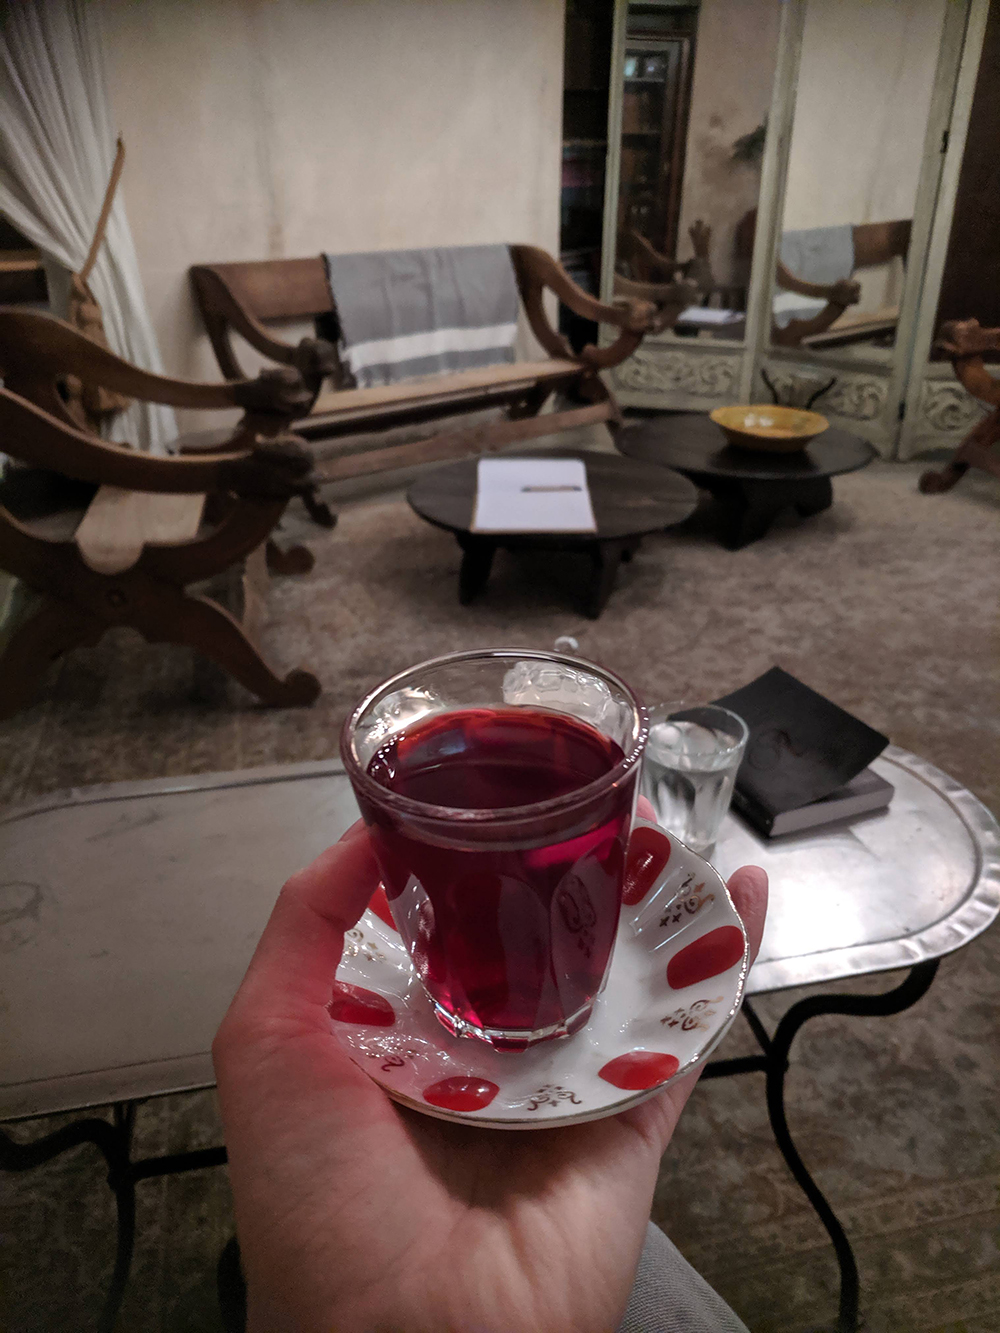 Sipping Turkish tea in the comfortable relaxation room.